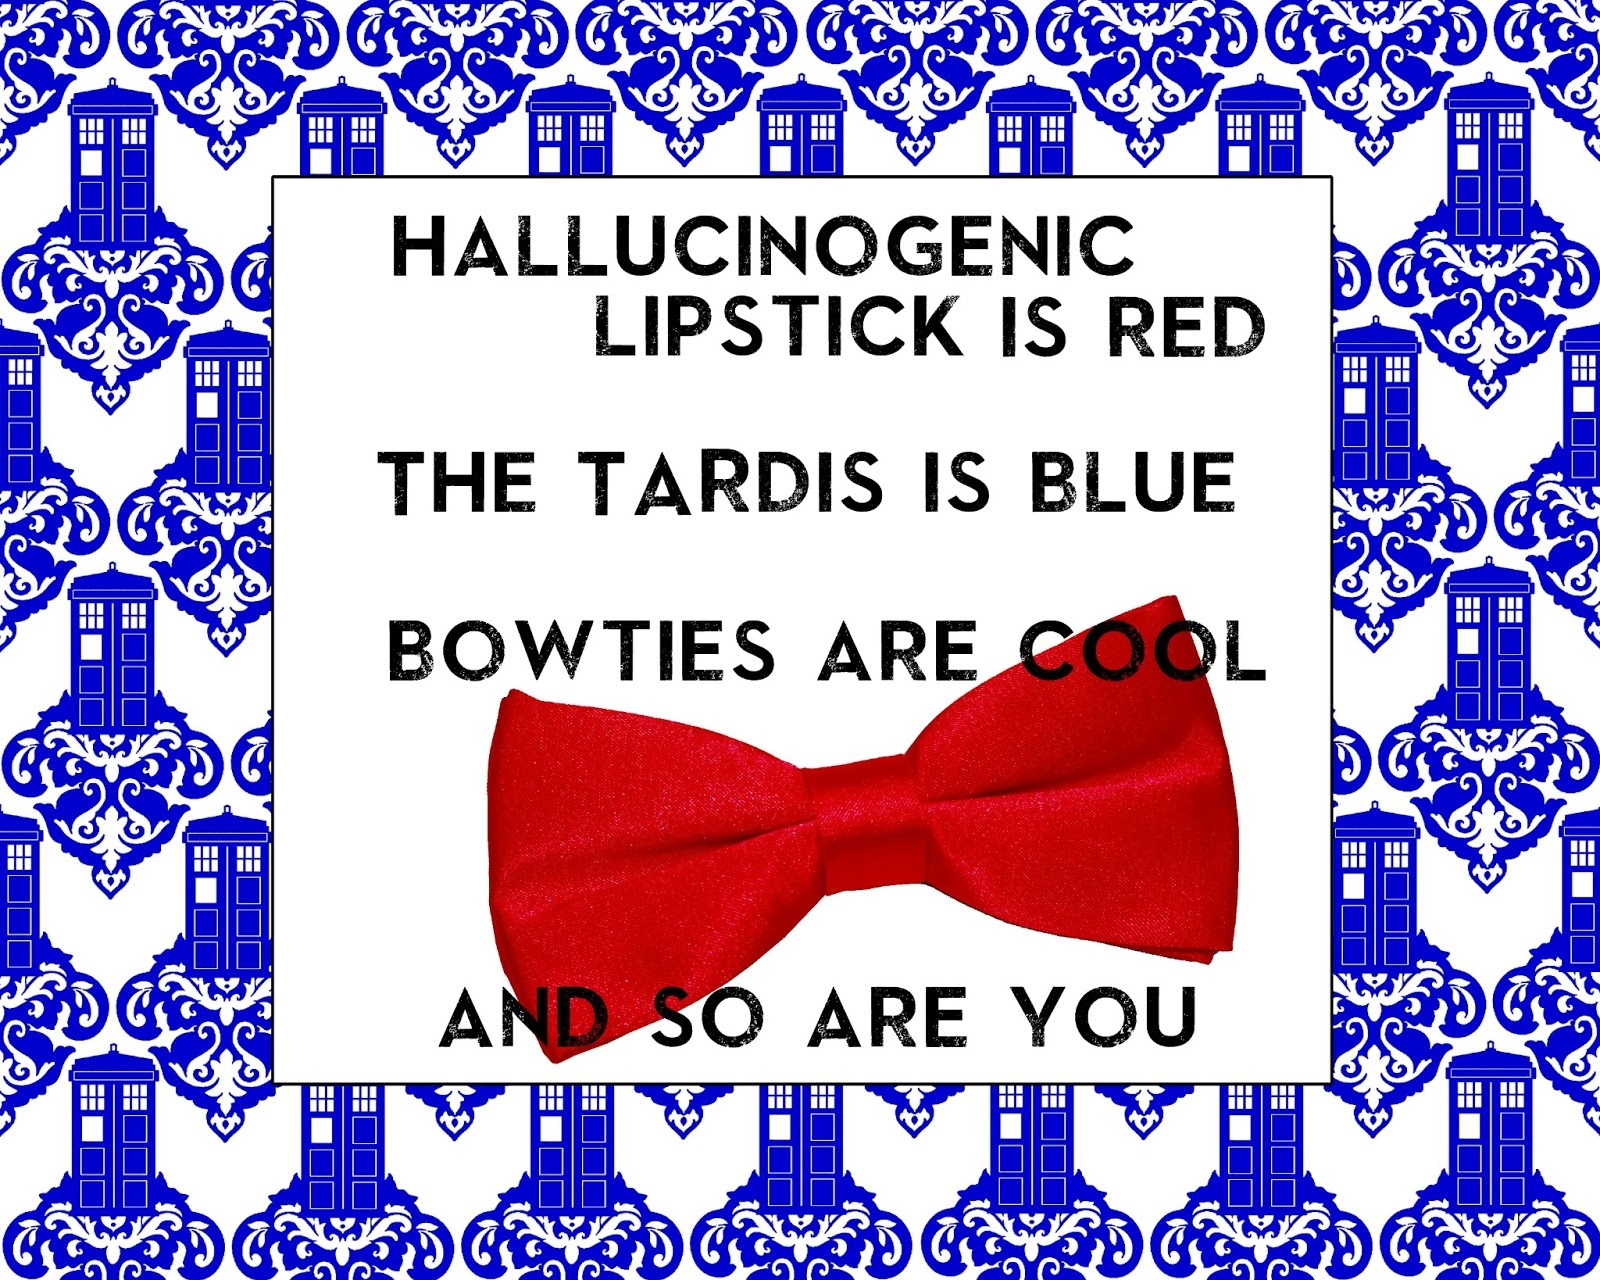 45 Doctor Who Inspired Valentine's Day Printables! - Free Printable Doctor Who Valentines